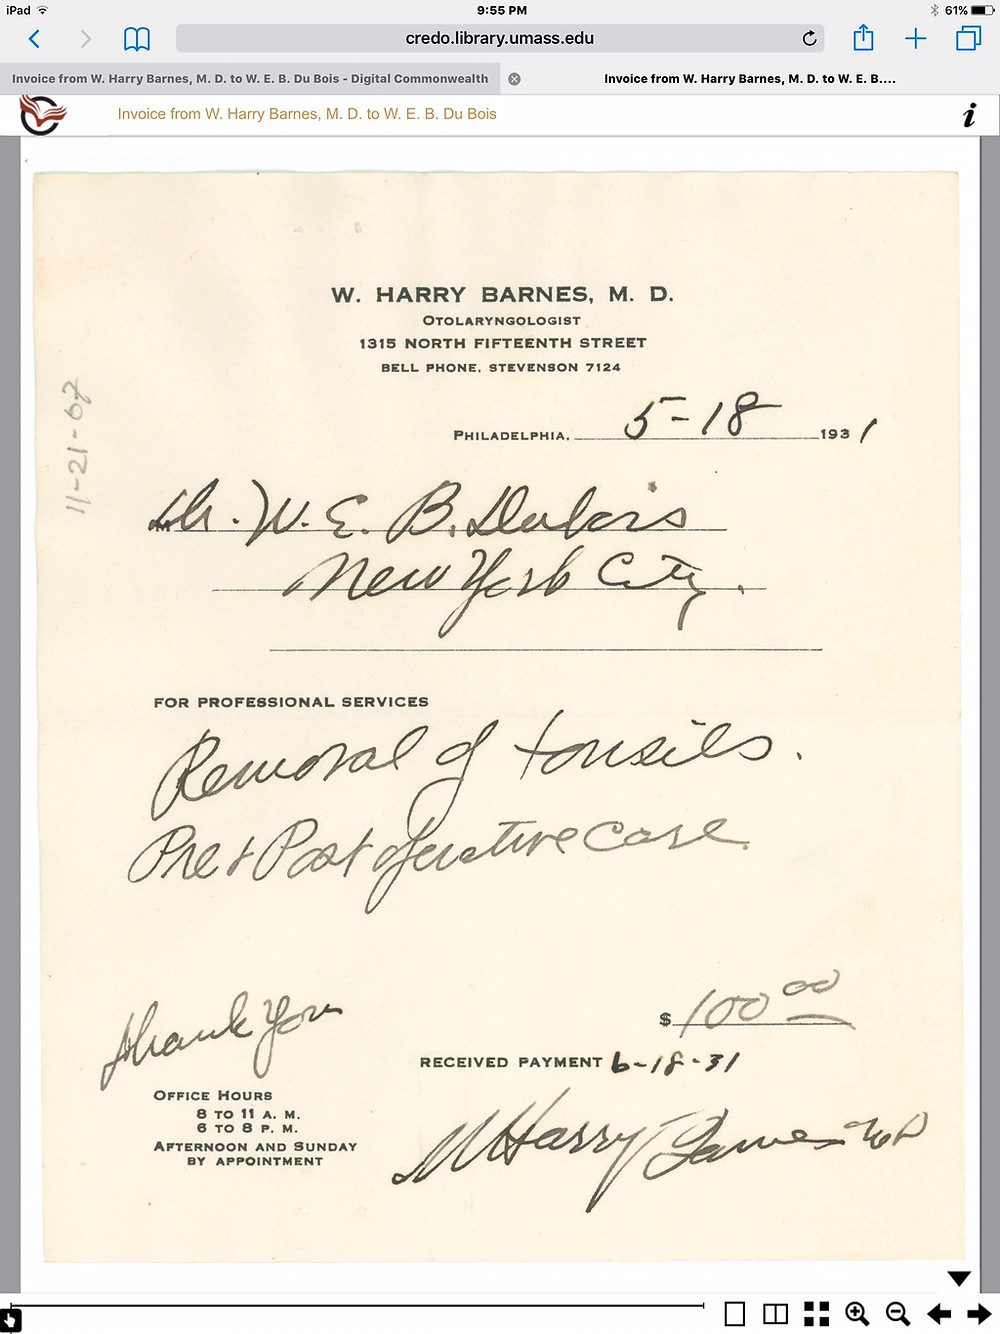 Annotated bill from W. Harry Barnes, M.D. to W.E.B. Dubois, PhD for tonsillectomy